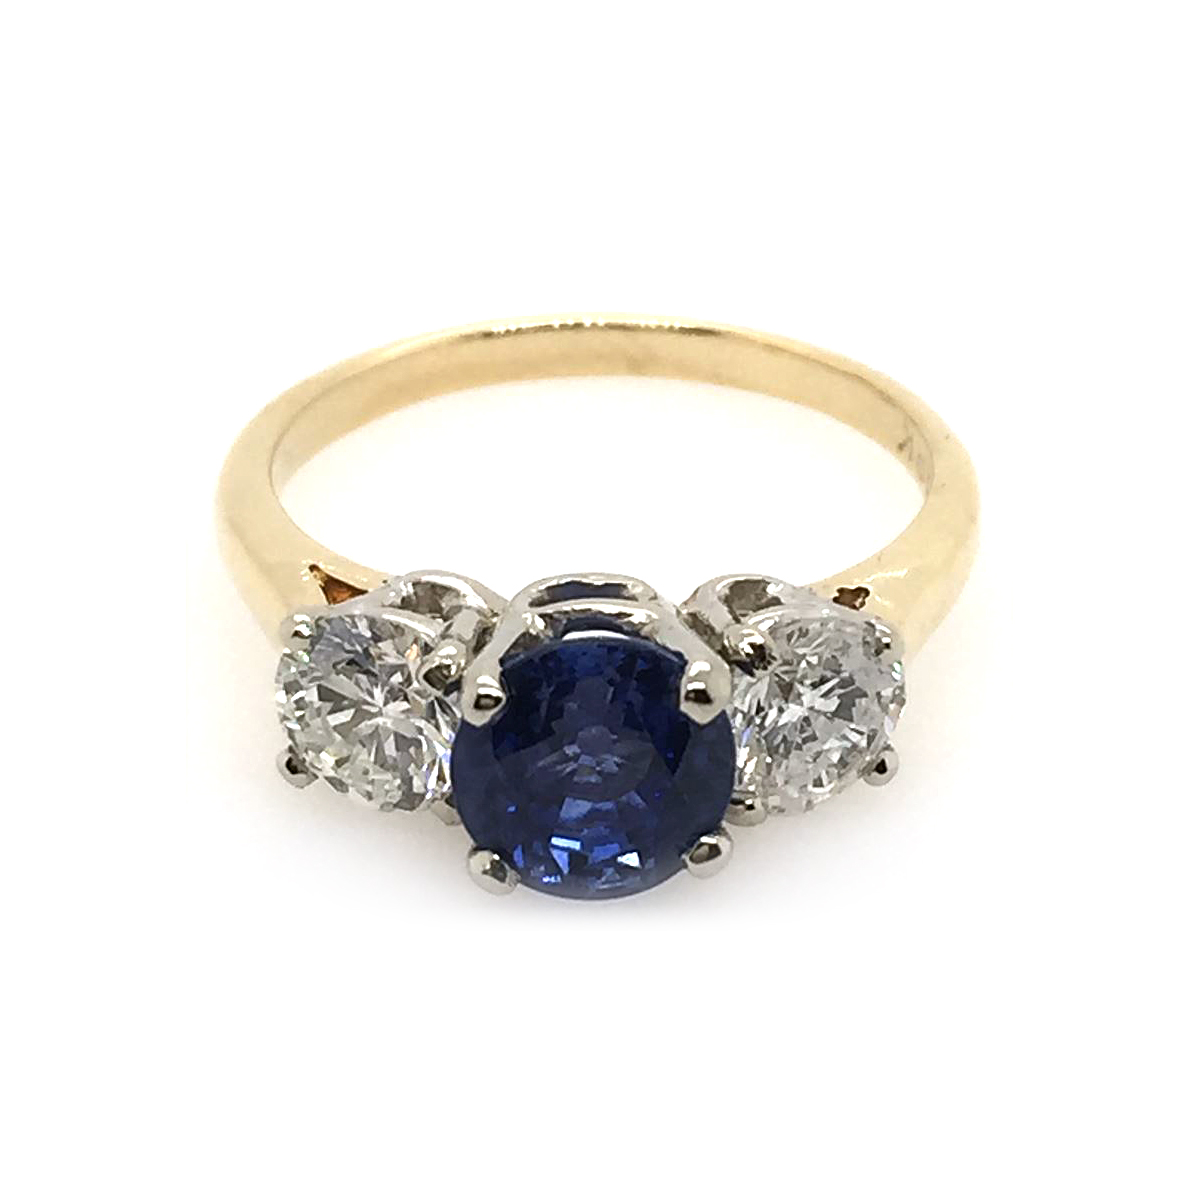 Vintage 18 Karat Yellow and White Gold Sapphire and Diamond Ring